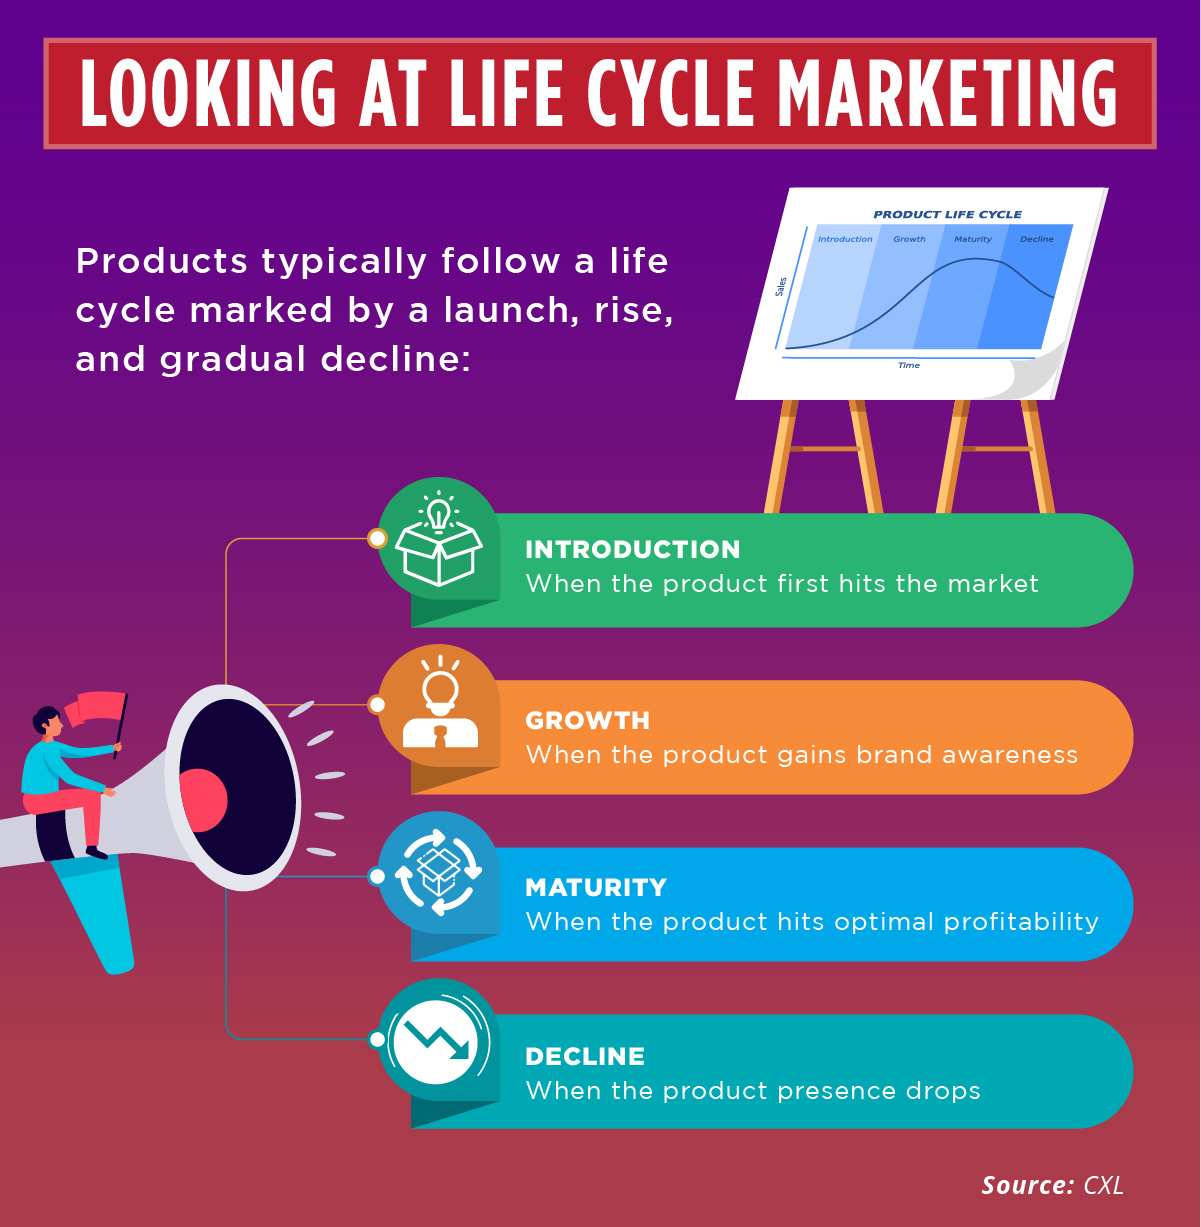 The lifecycle of marketing includes Introduction, Growth, Maturity, and Decline.